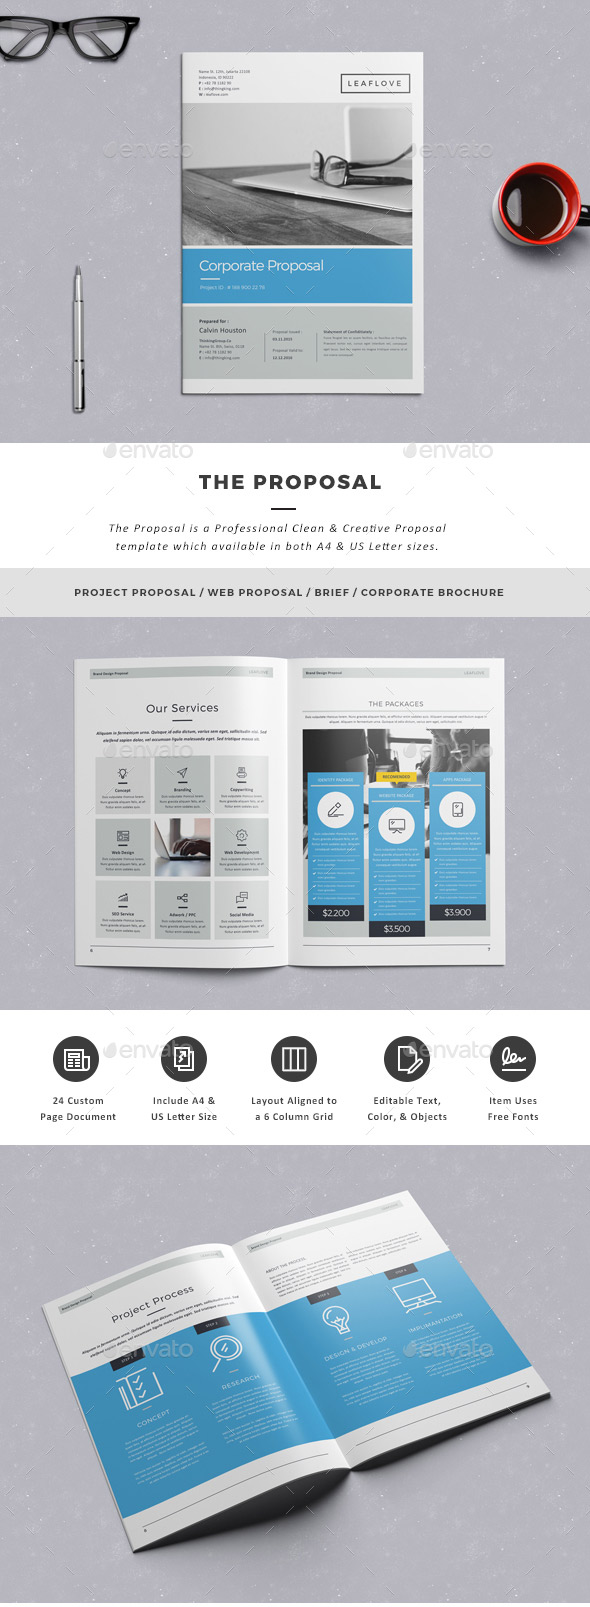 Clean creative business proposal template